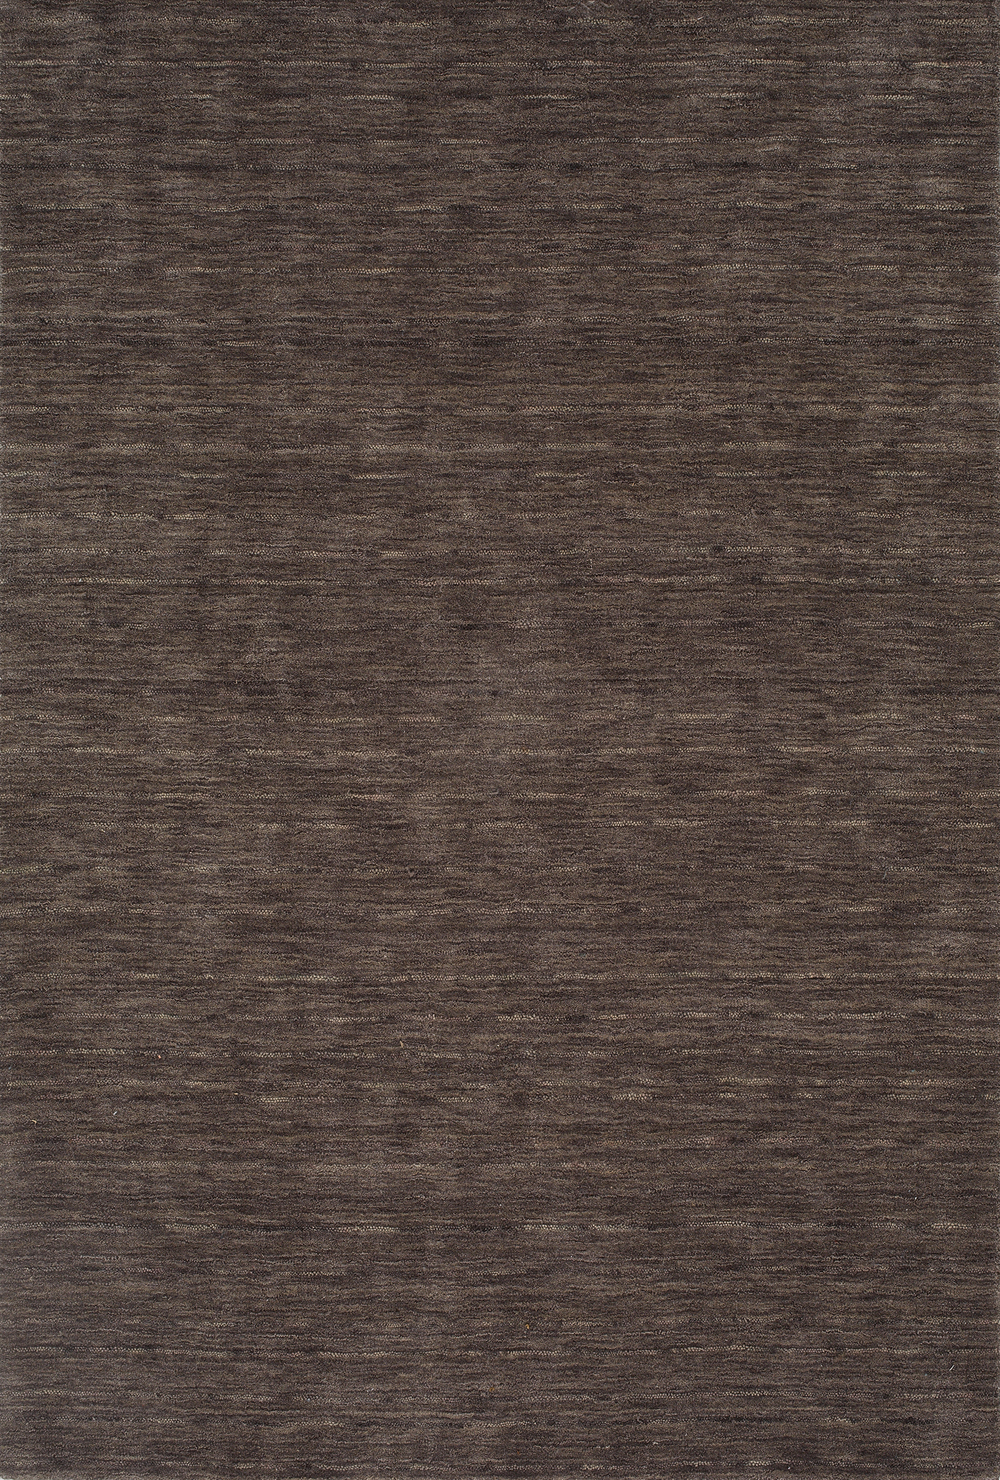 Rafia Plum Gabbeh Dyed Wool Rug Textured Plush Rugs